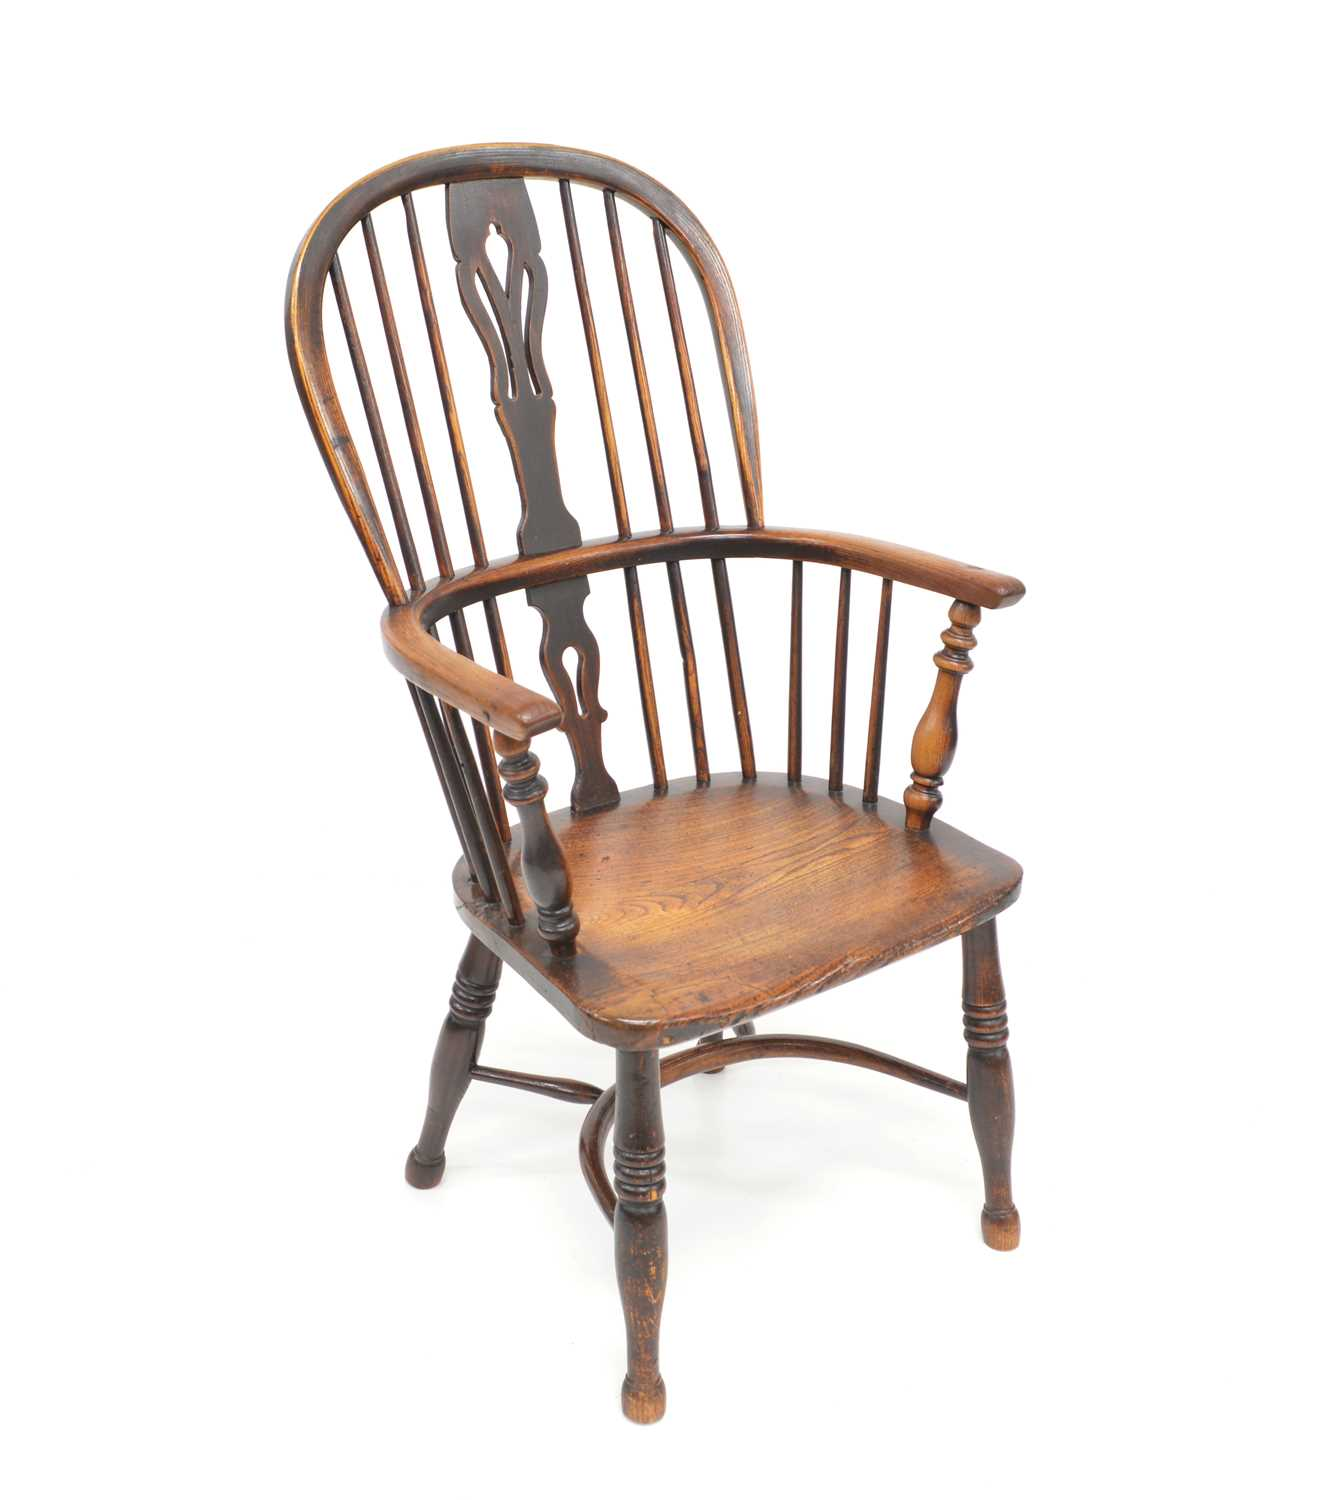 Lot 378 - Mid 19th century ash and elm Windsor chair